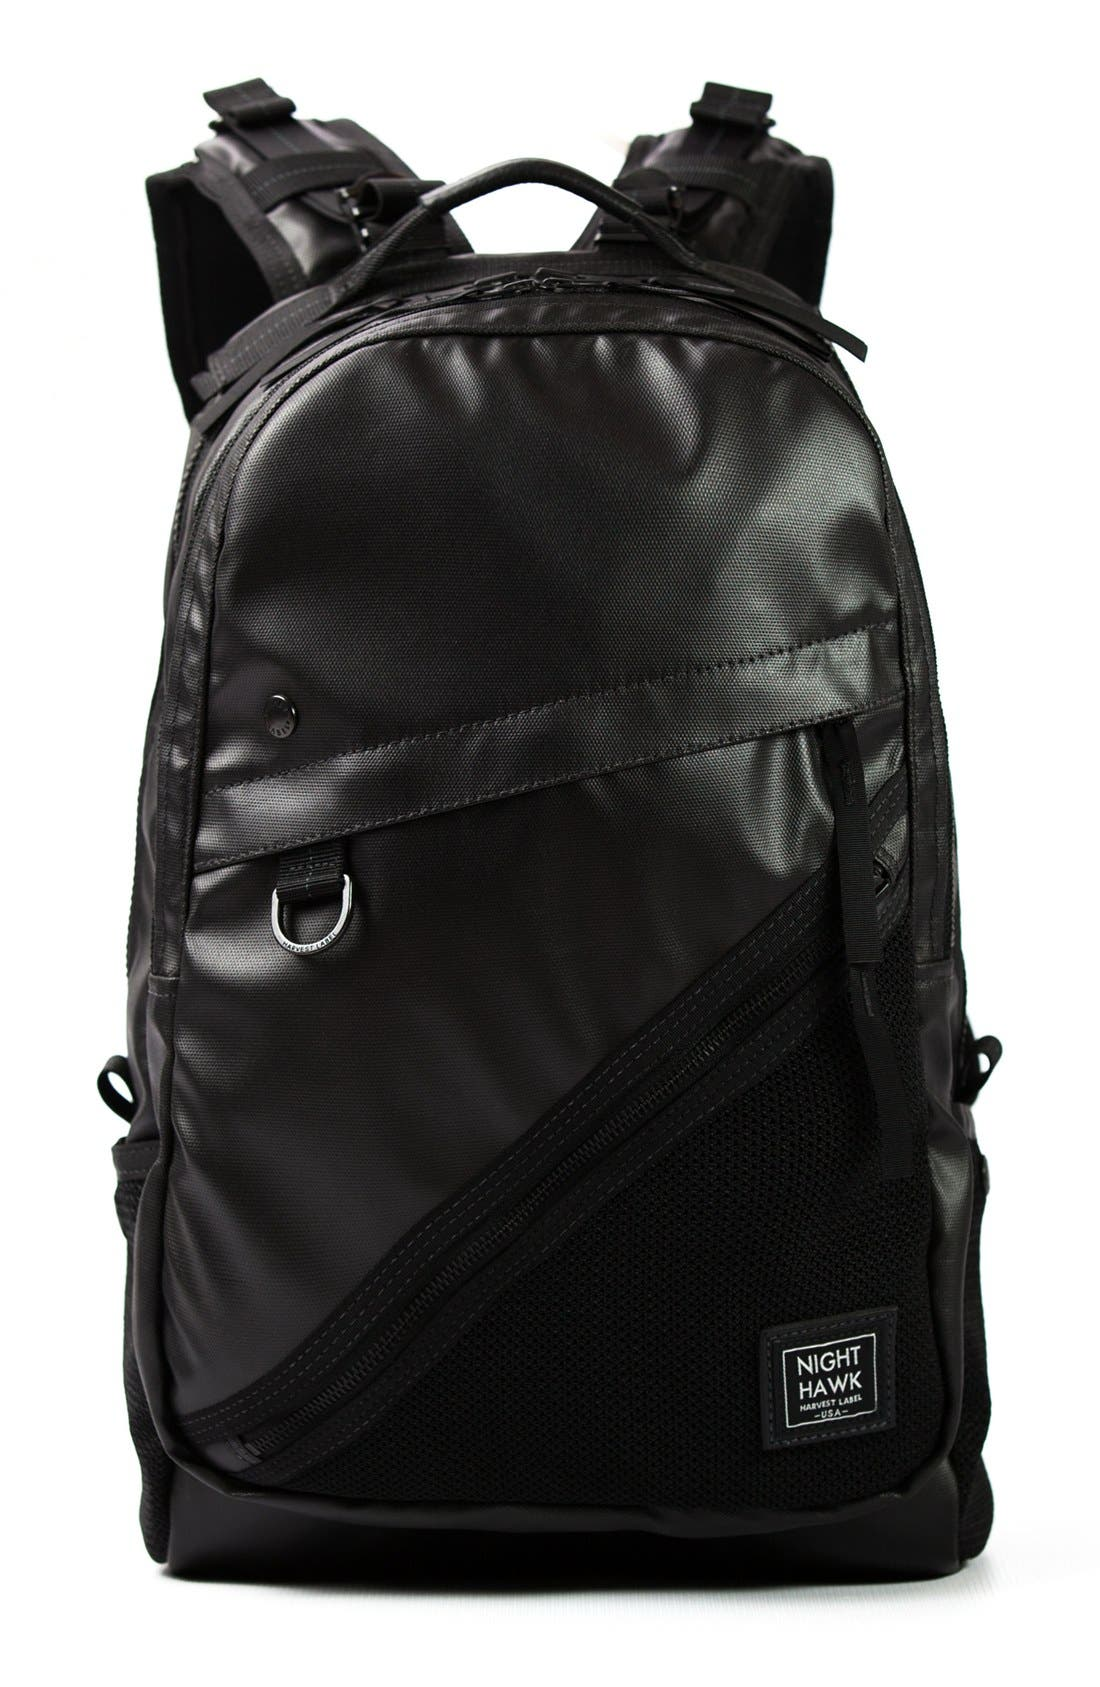 'NightHawk' Backpack,                             Main thumbnail 1, color,                             Black